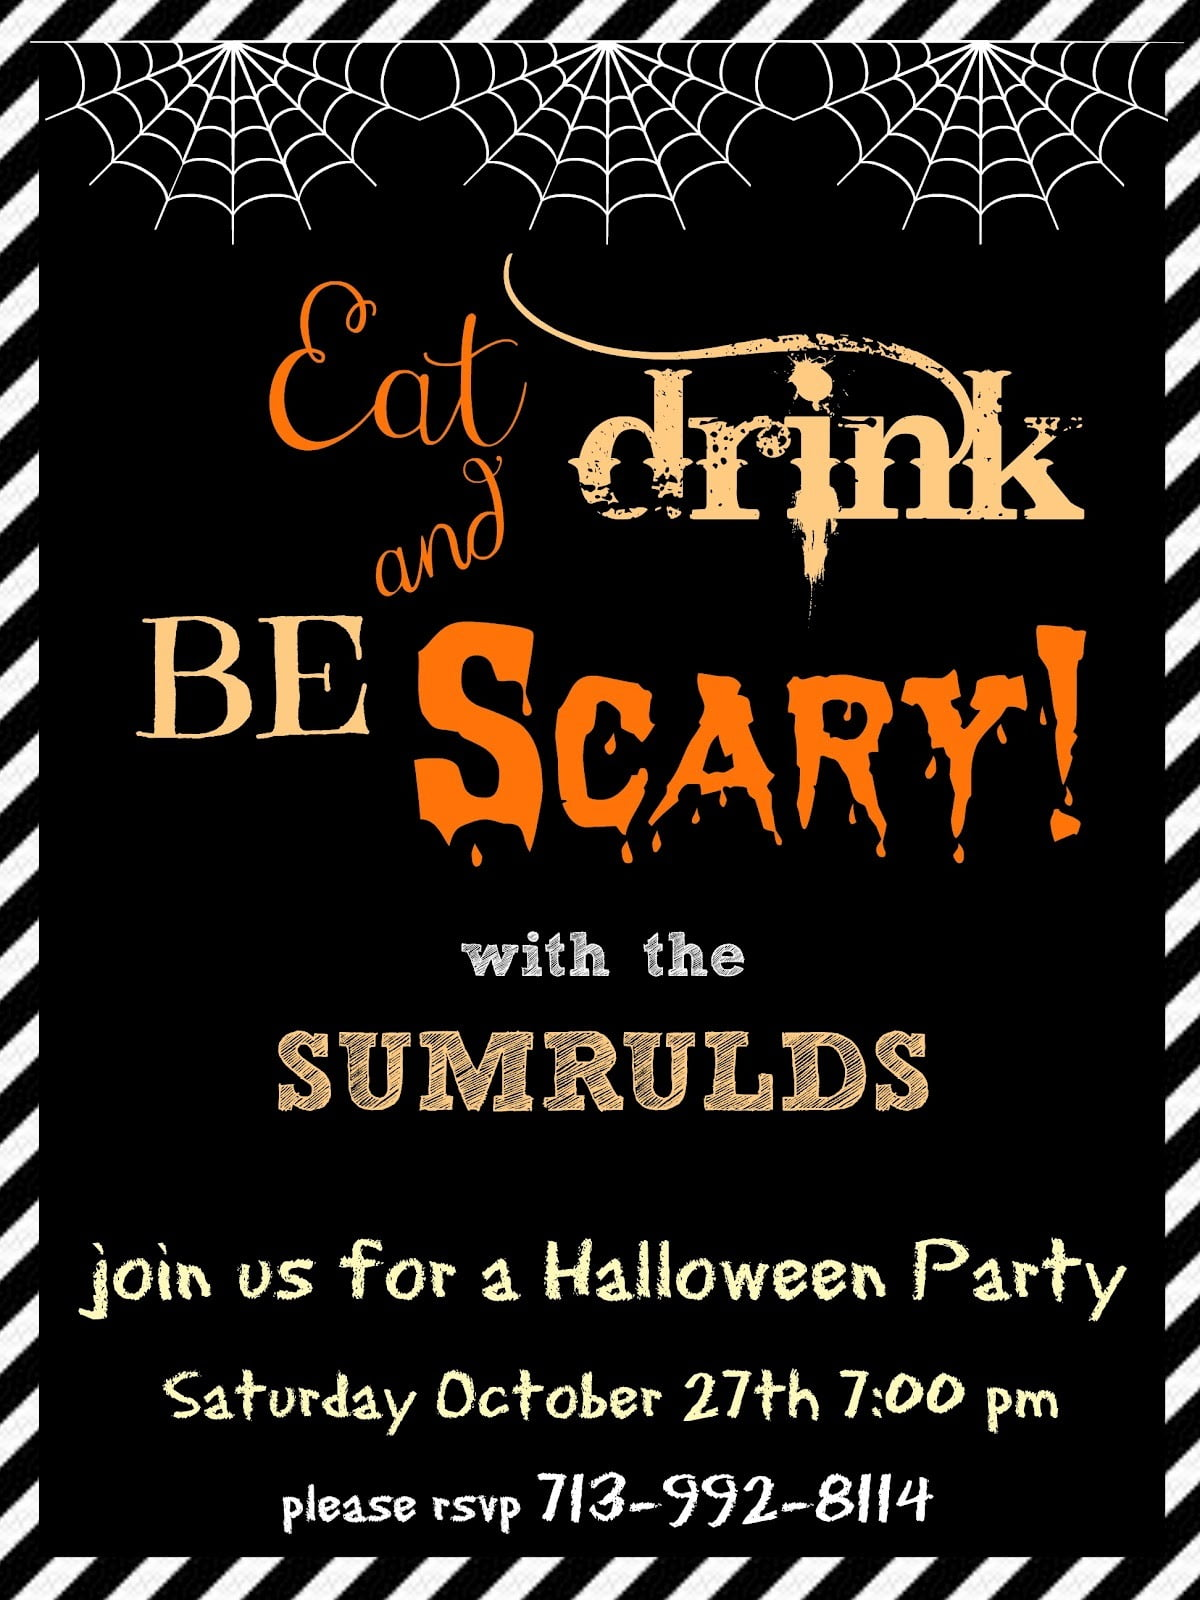 Halloween Party Invitations Templates For The Invitations Design